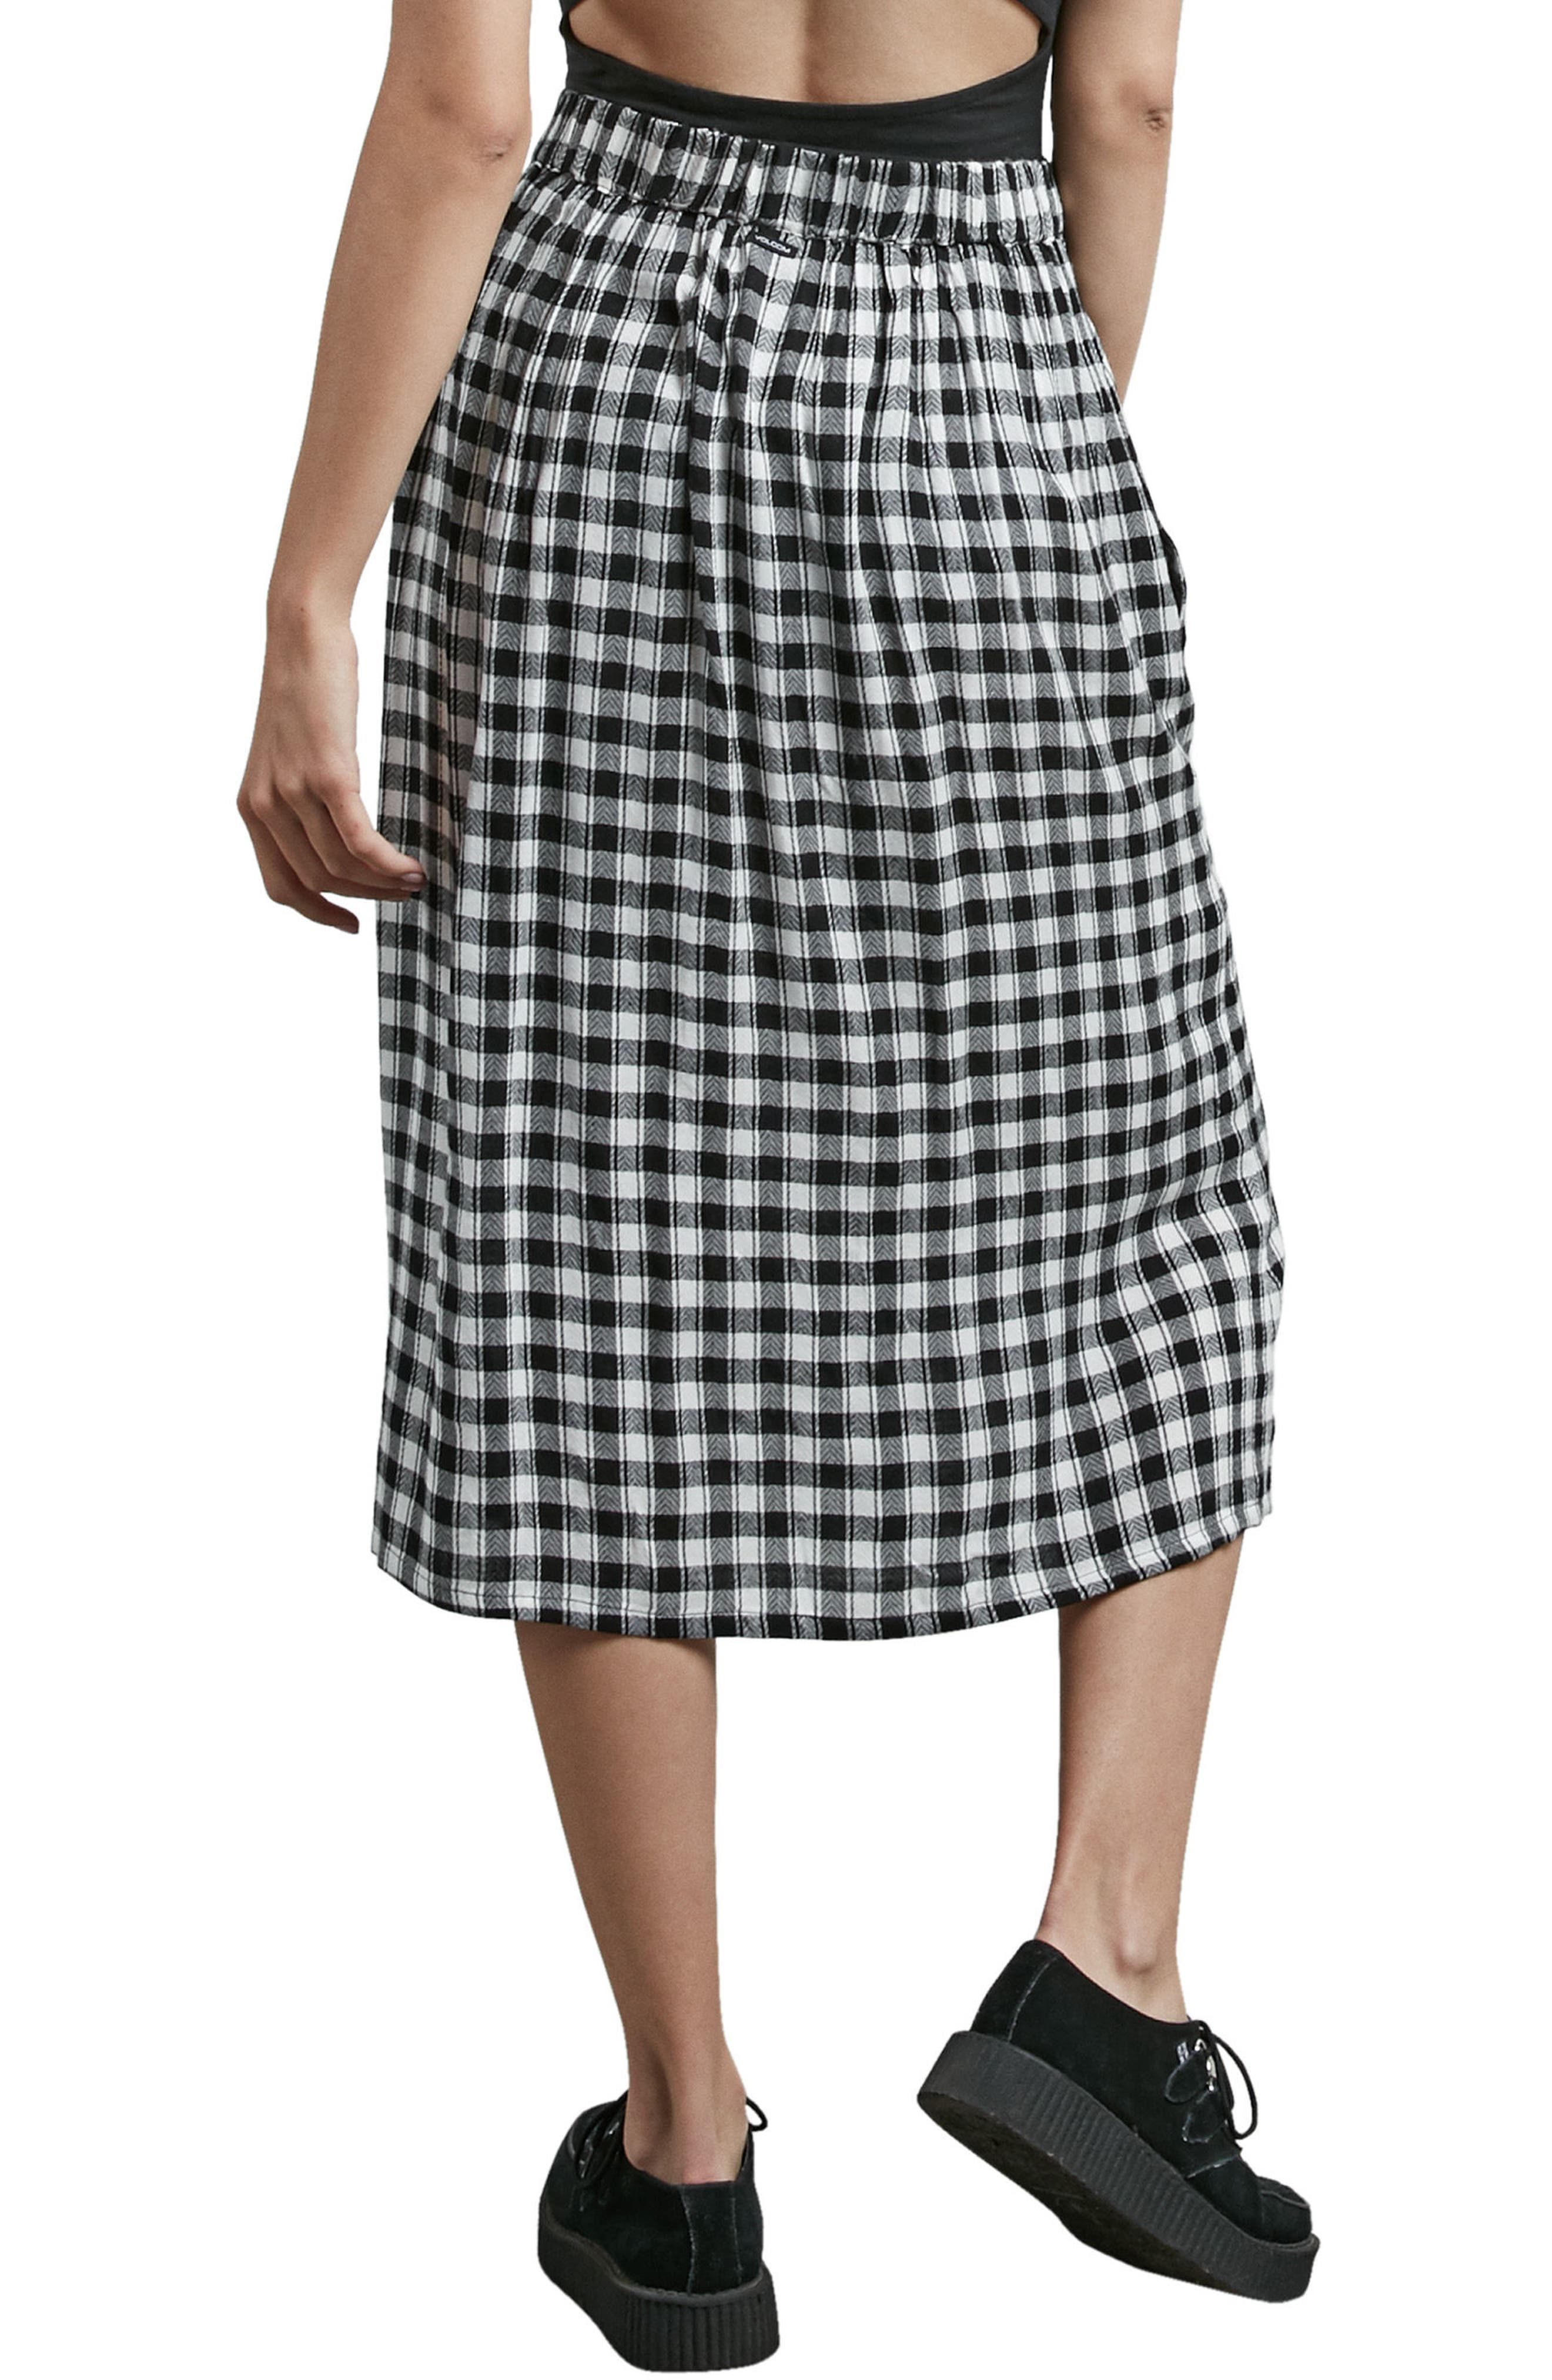 Get To Steppin Midi Skirt,                             Alternate thumbnail 2, color,                             001